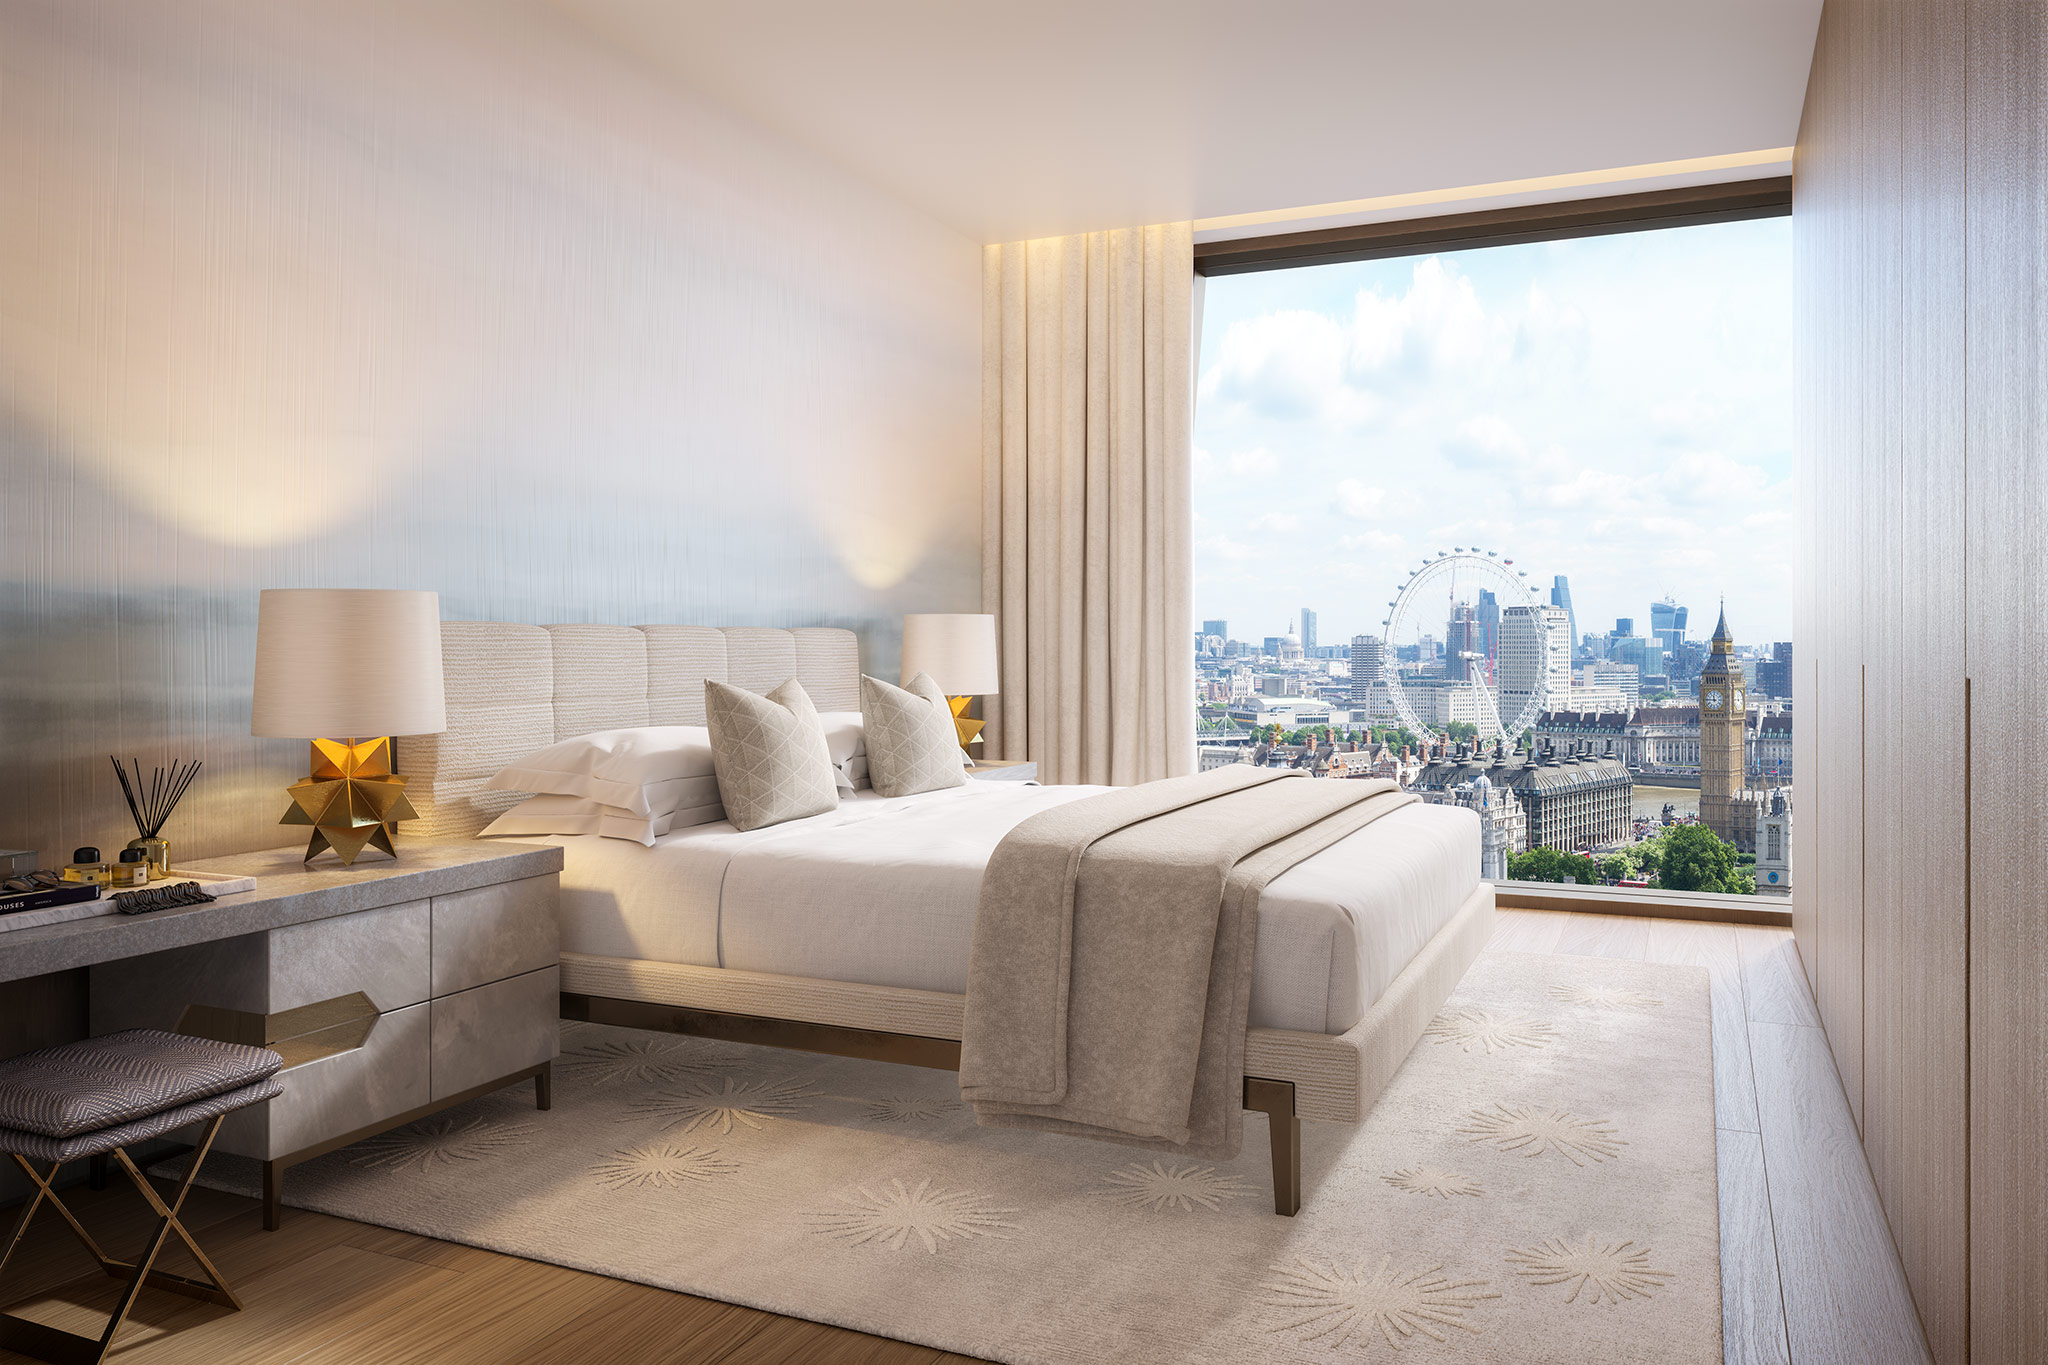 Master bedroom, with views over London eye, The Broadway